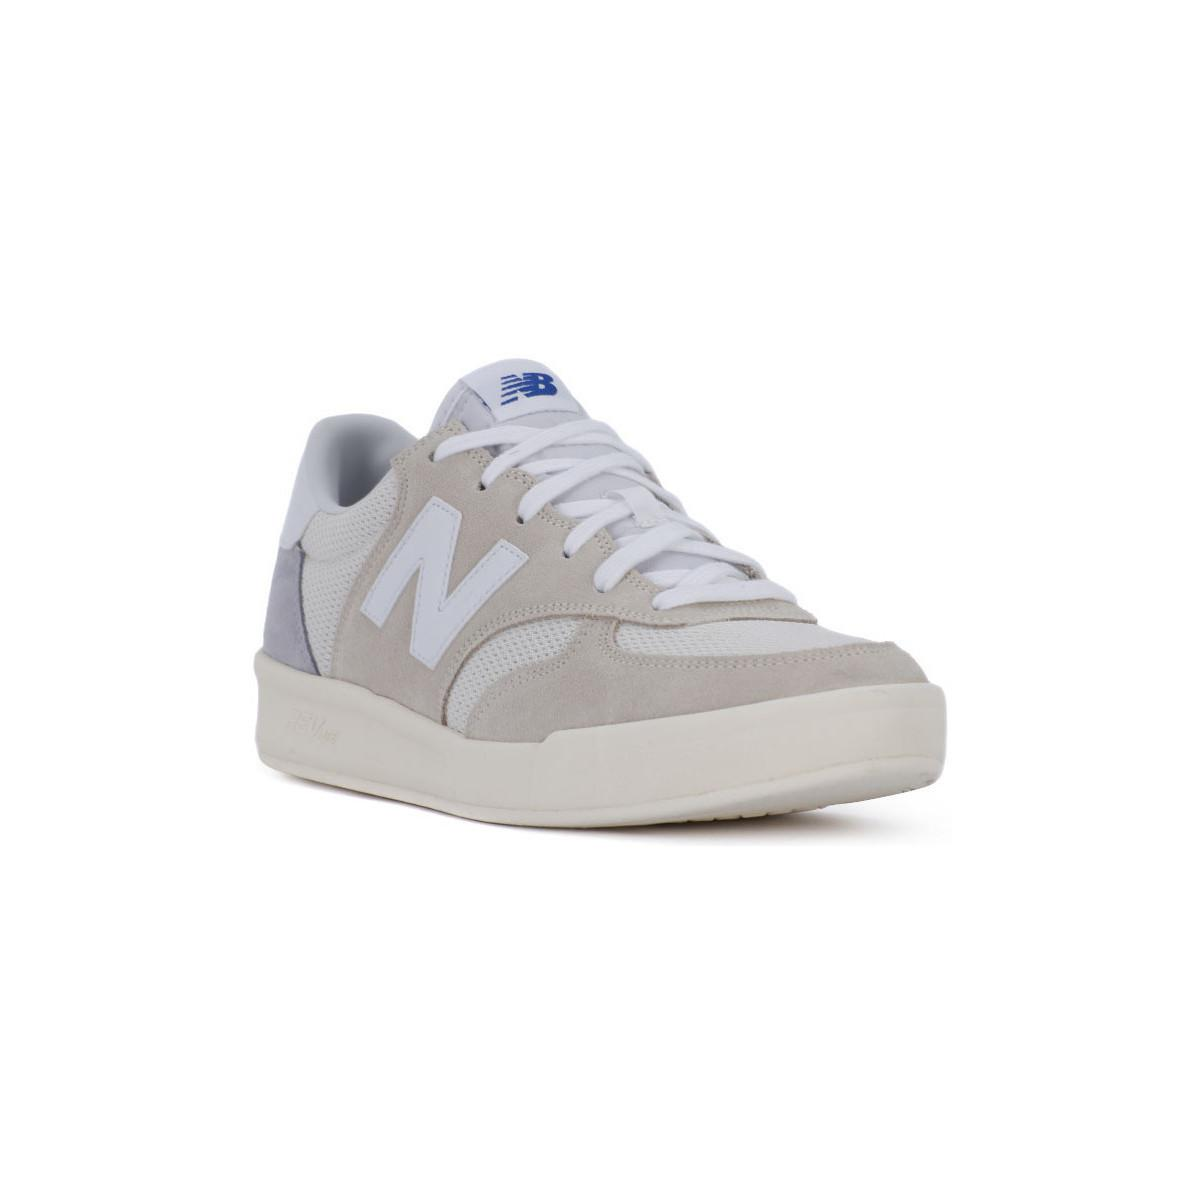 a7cc69ba2703f4 New Balance Crt300eo Men s Shoes (trainers) In White in White for ...